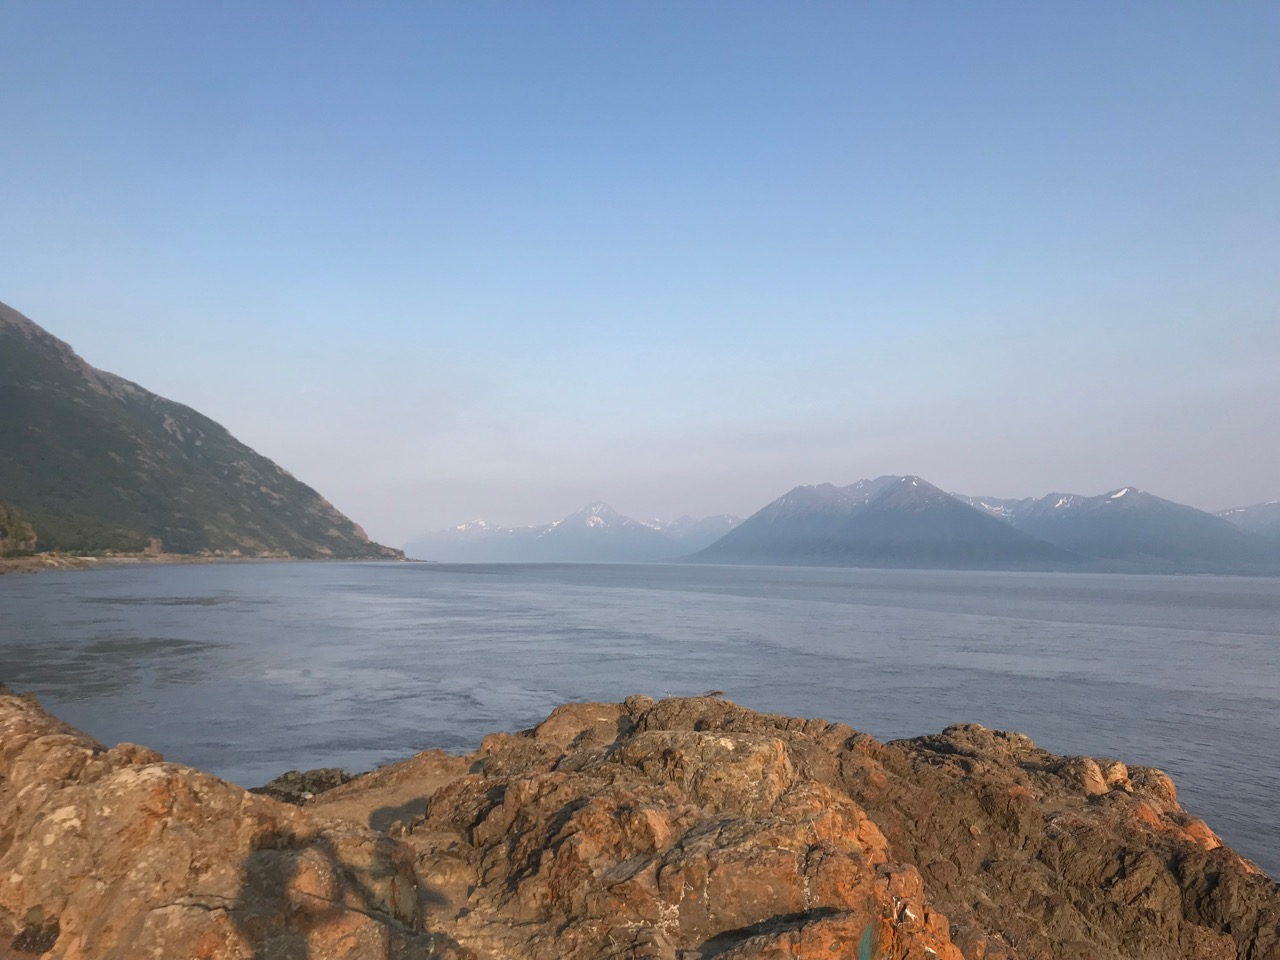 The view south along Turnagain Arm. The tides here sometimes reach 30 feet!